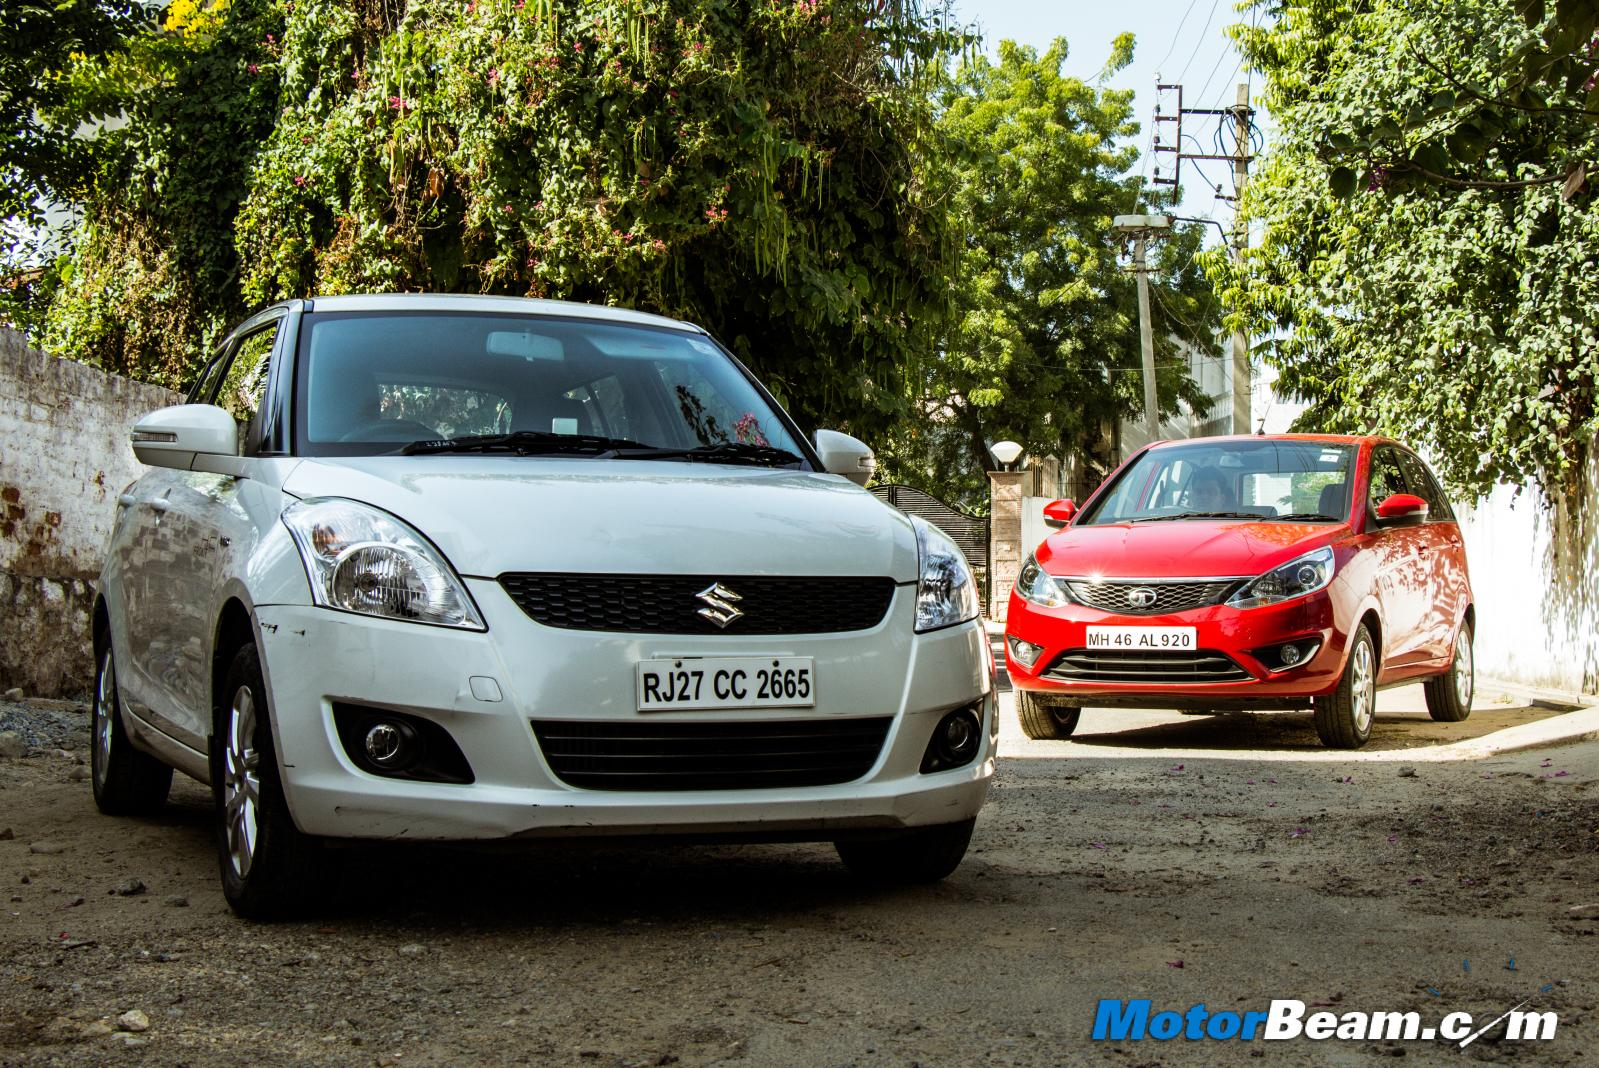 Tata Bolt vs Maruti Swift Comparison